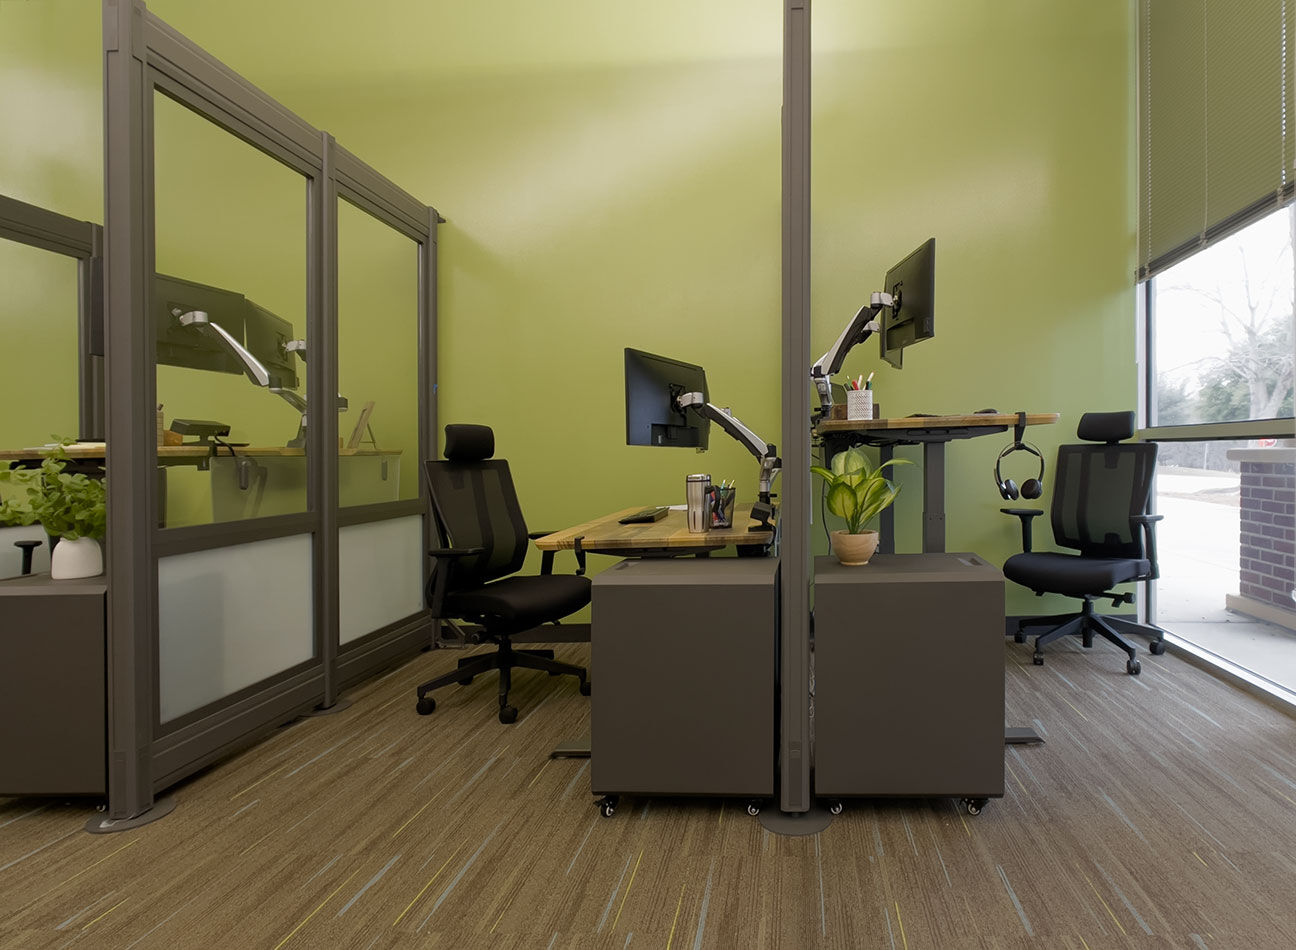 vari office furniture in the united health services office   image